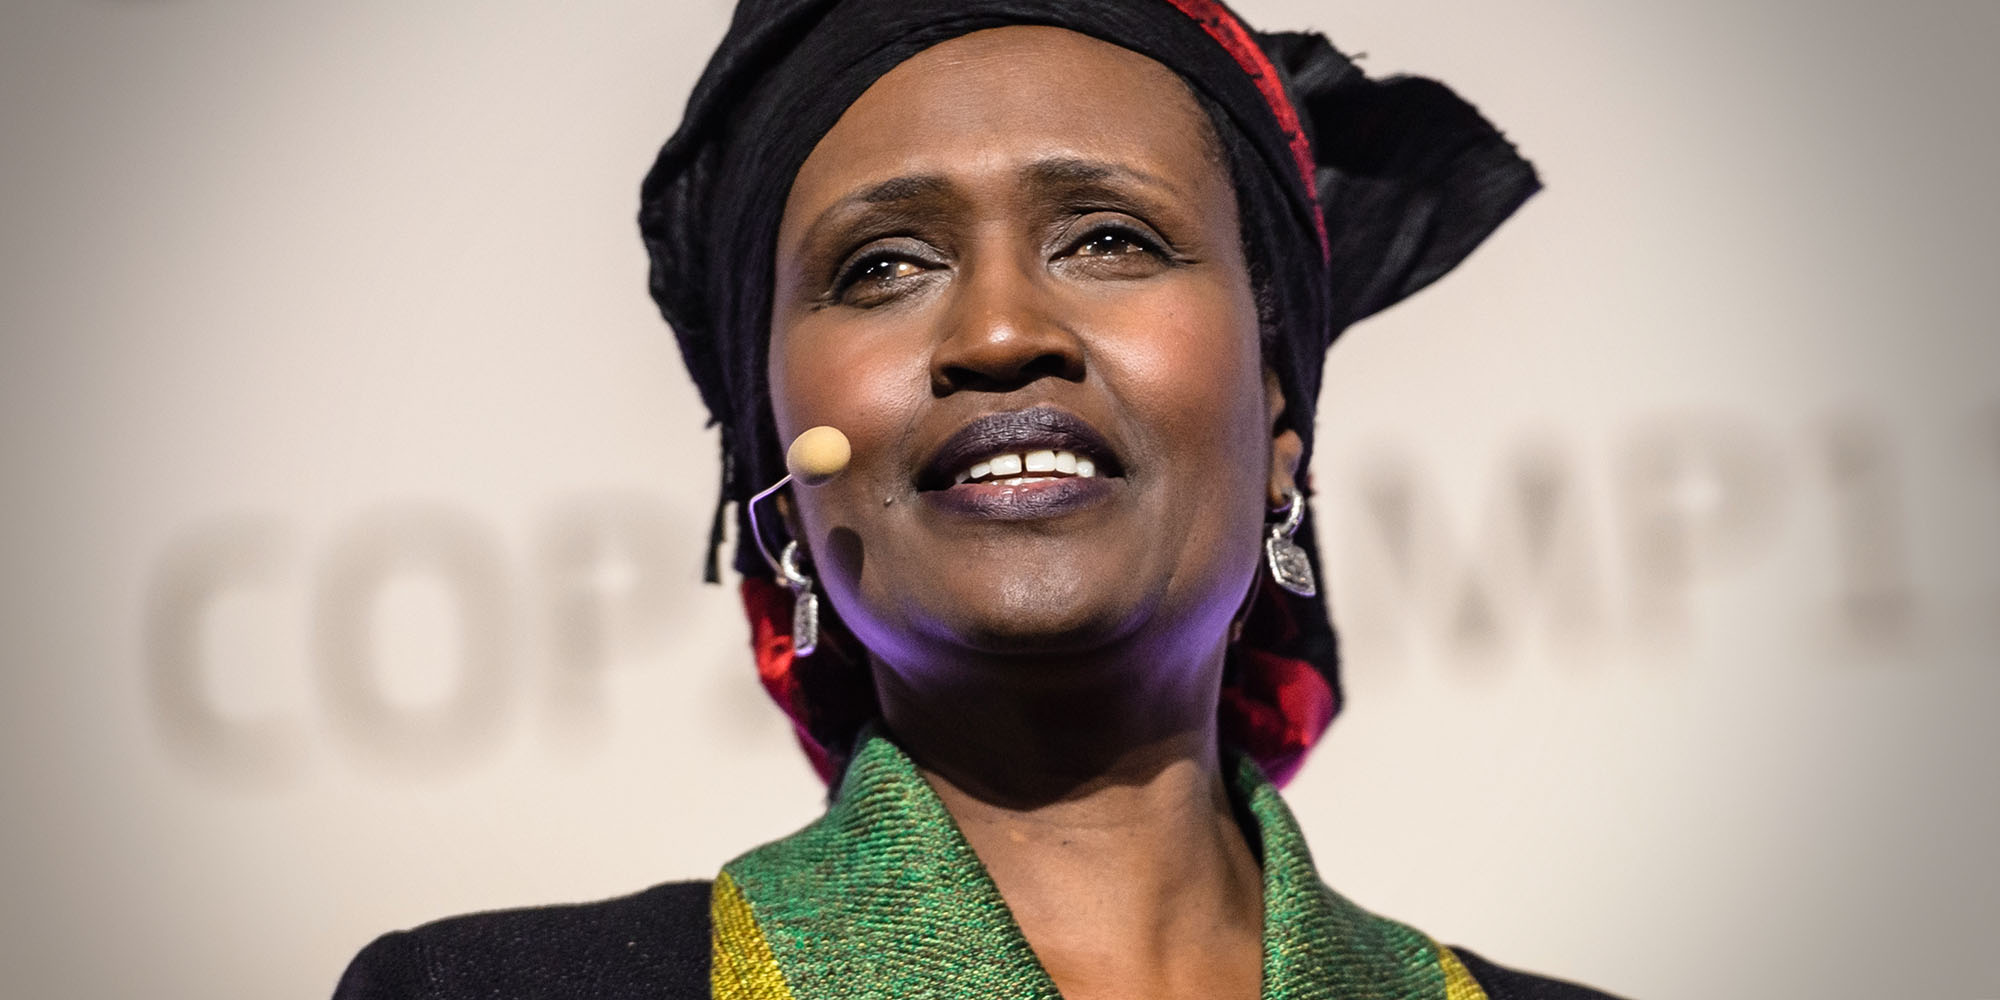 KEY APPOINTMENT: African woman to lead UNAIDS